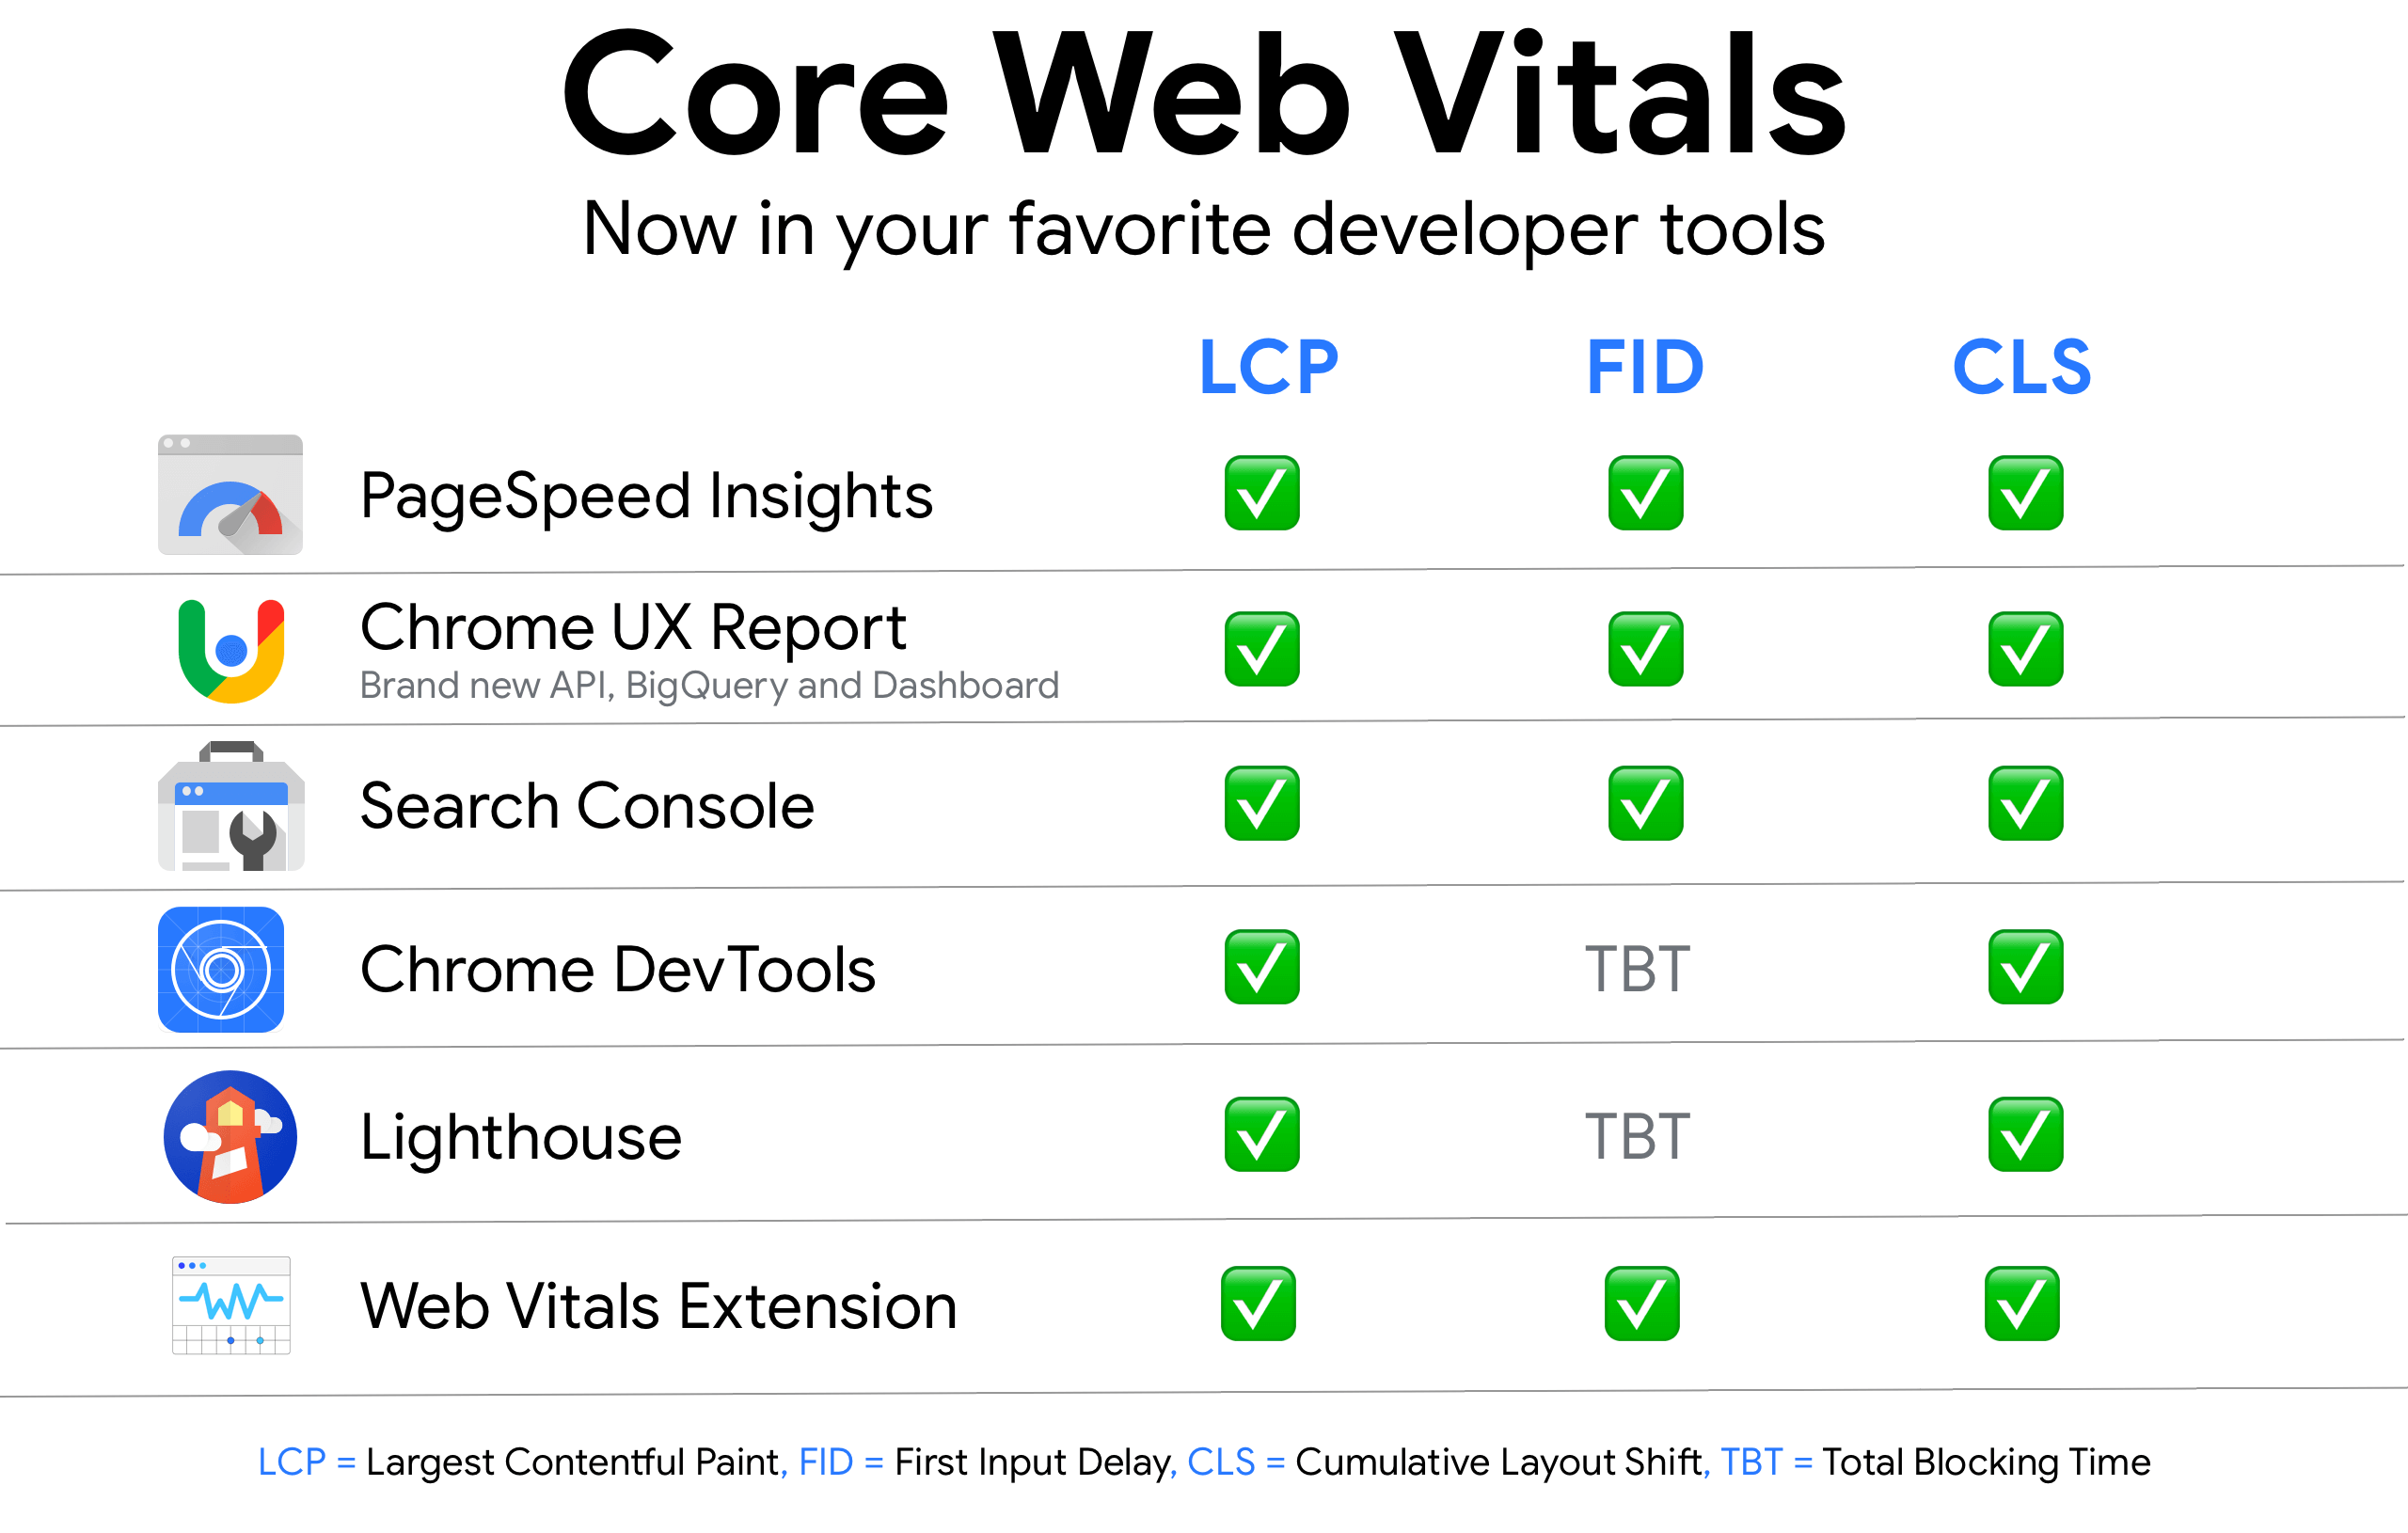 Summary of Chrome and Search Tools that support the Core Web Vitals metrics